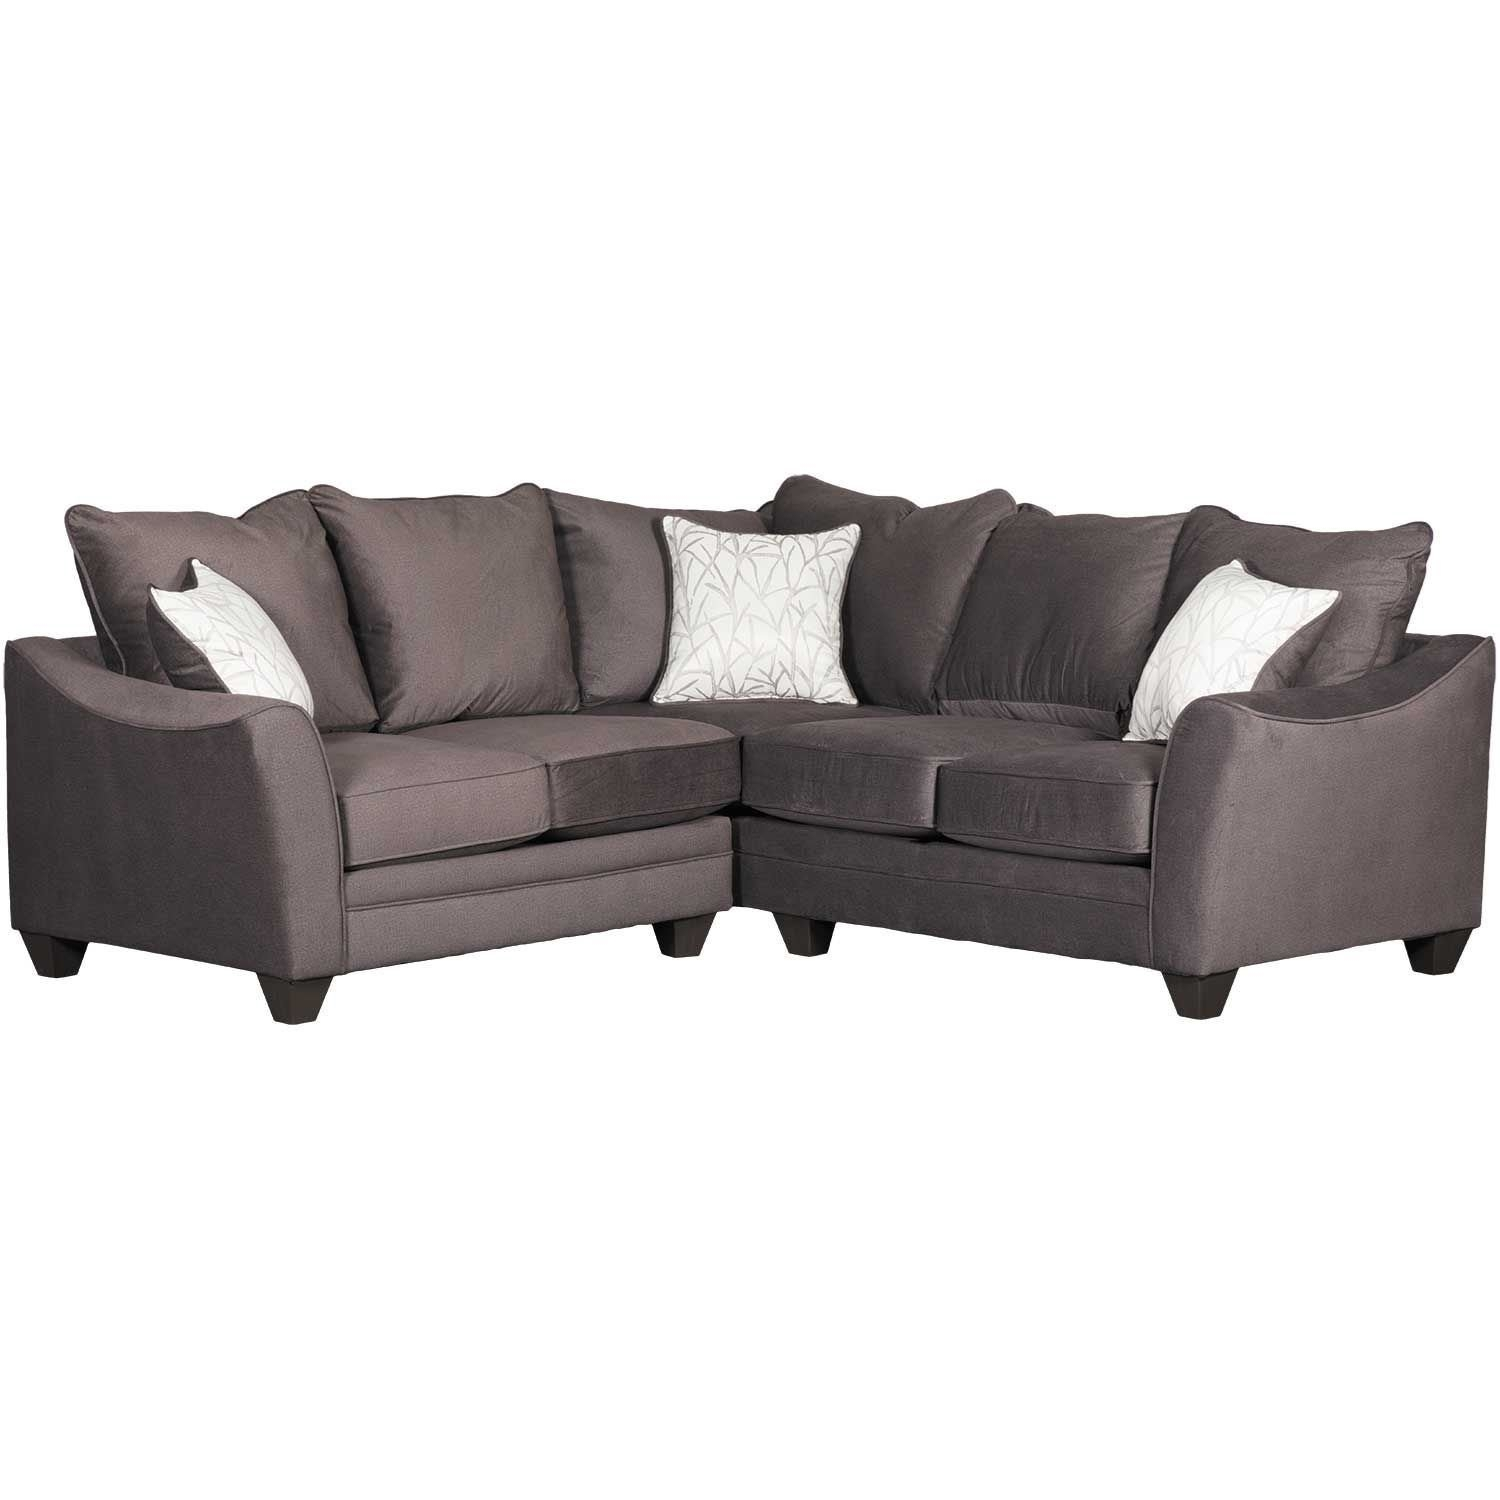 Flannel Seal 2 Piece Sectional With Raf Sofa | 3810/3816 | American Within Cosmos Grey 2 Piece Sectionals With Raf Chaise (View 11 of 25)